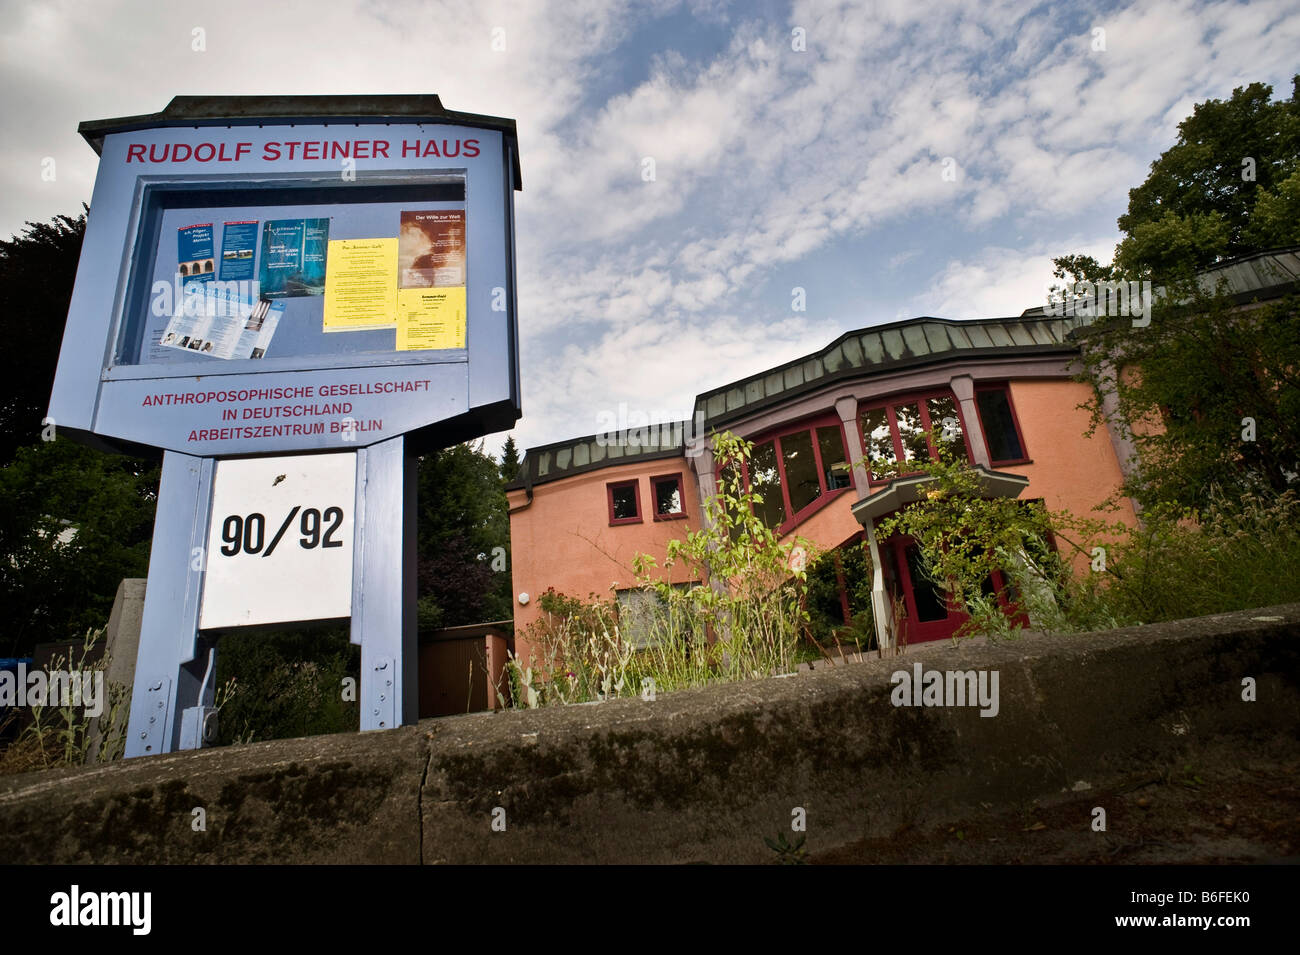 Rudolf Steiner House of the Anthroposophical Society in Germany, Working Center Berlin, Germany, Europe - Stock Image